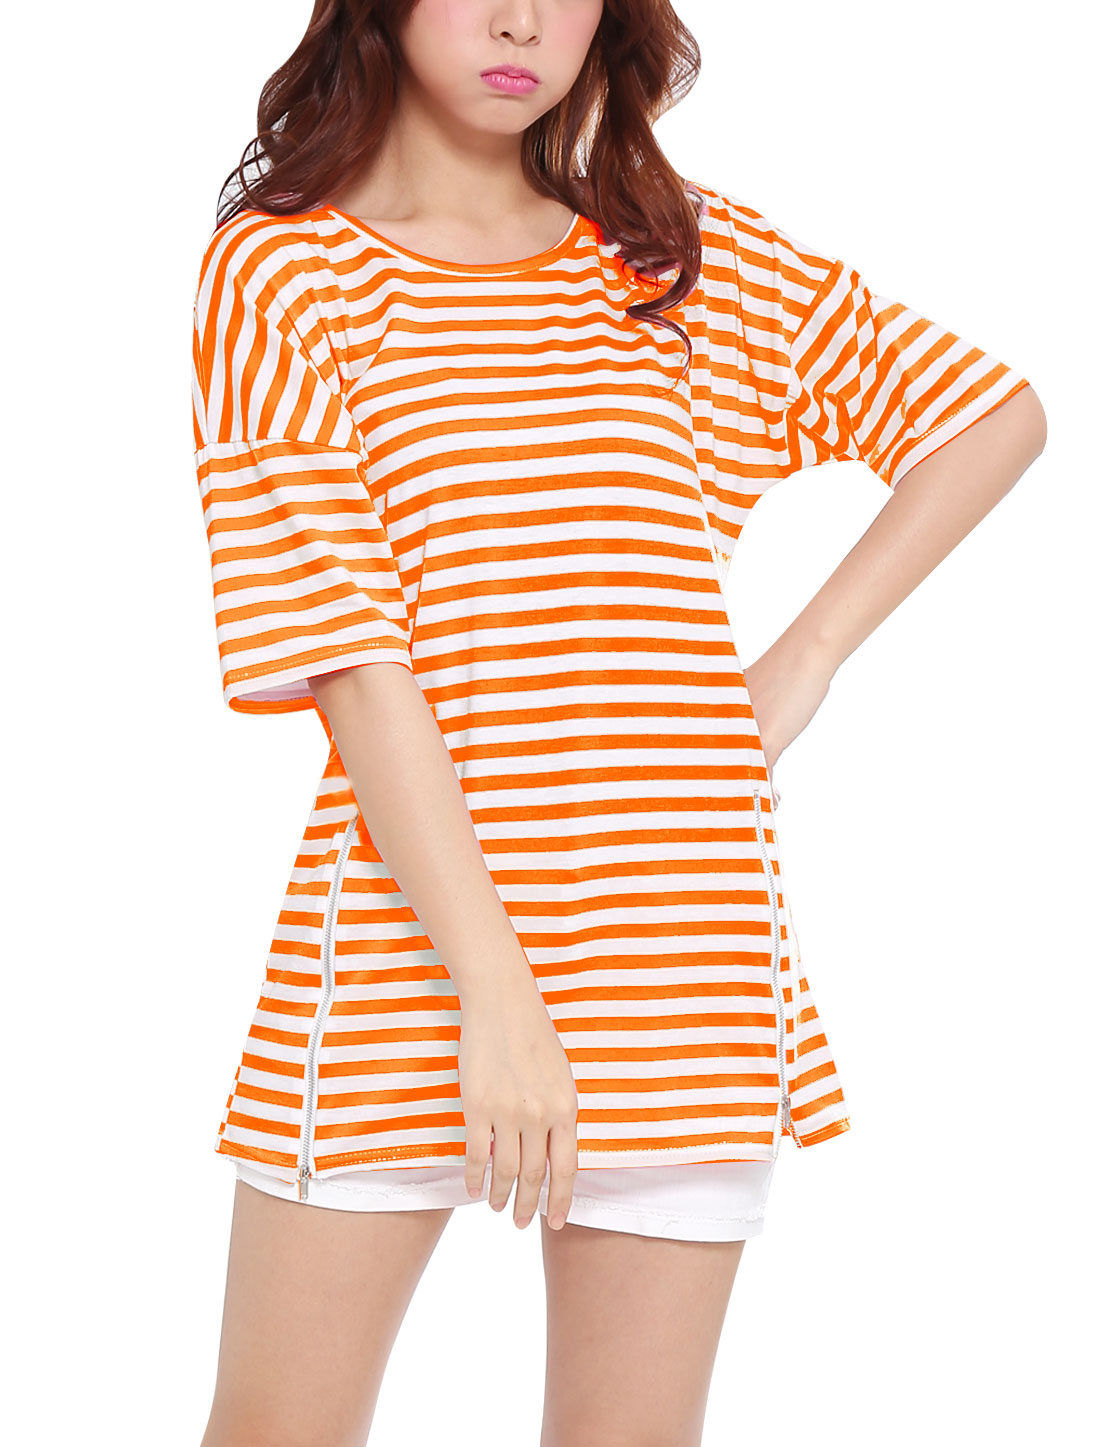 Lady Pullover Half Batwing Sleeve Stripes Tunic Top Orange XS